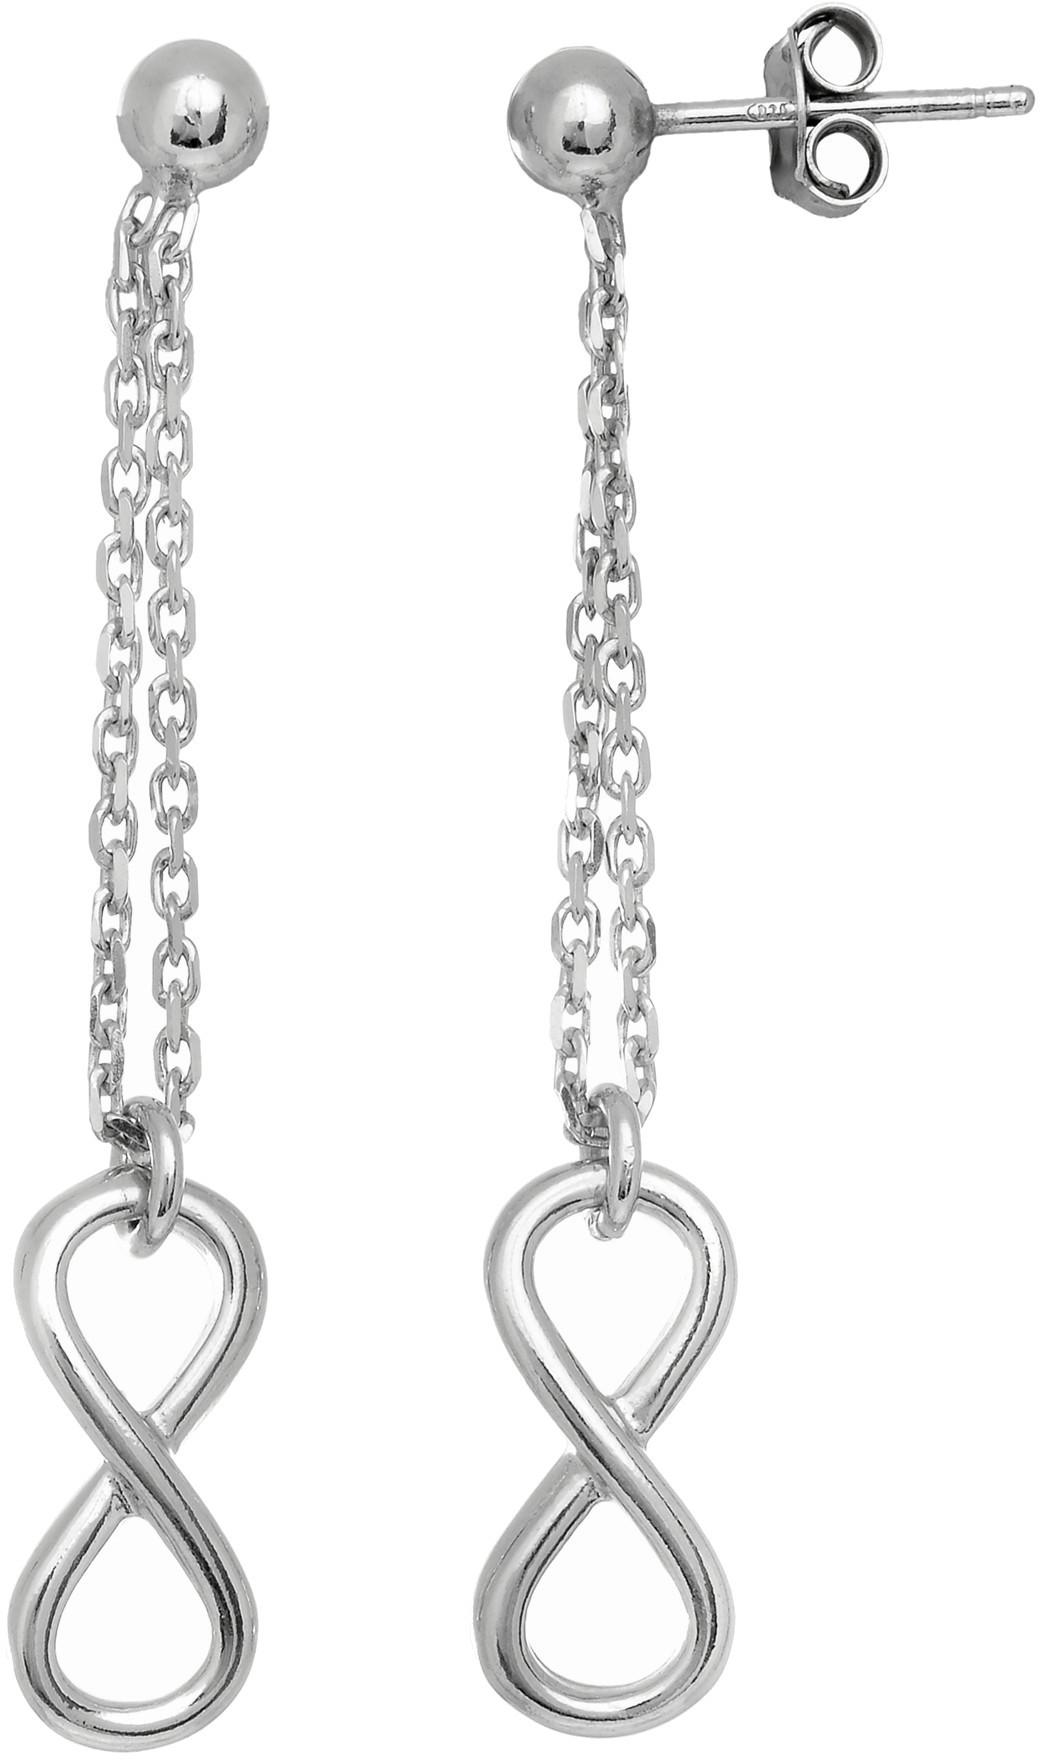 Rhodium Plated Shiny Diamond Cut Infinity Symbol Drop Earrings 925 Sterling Silver